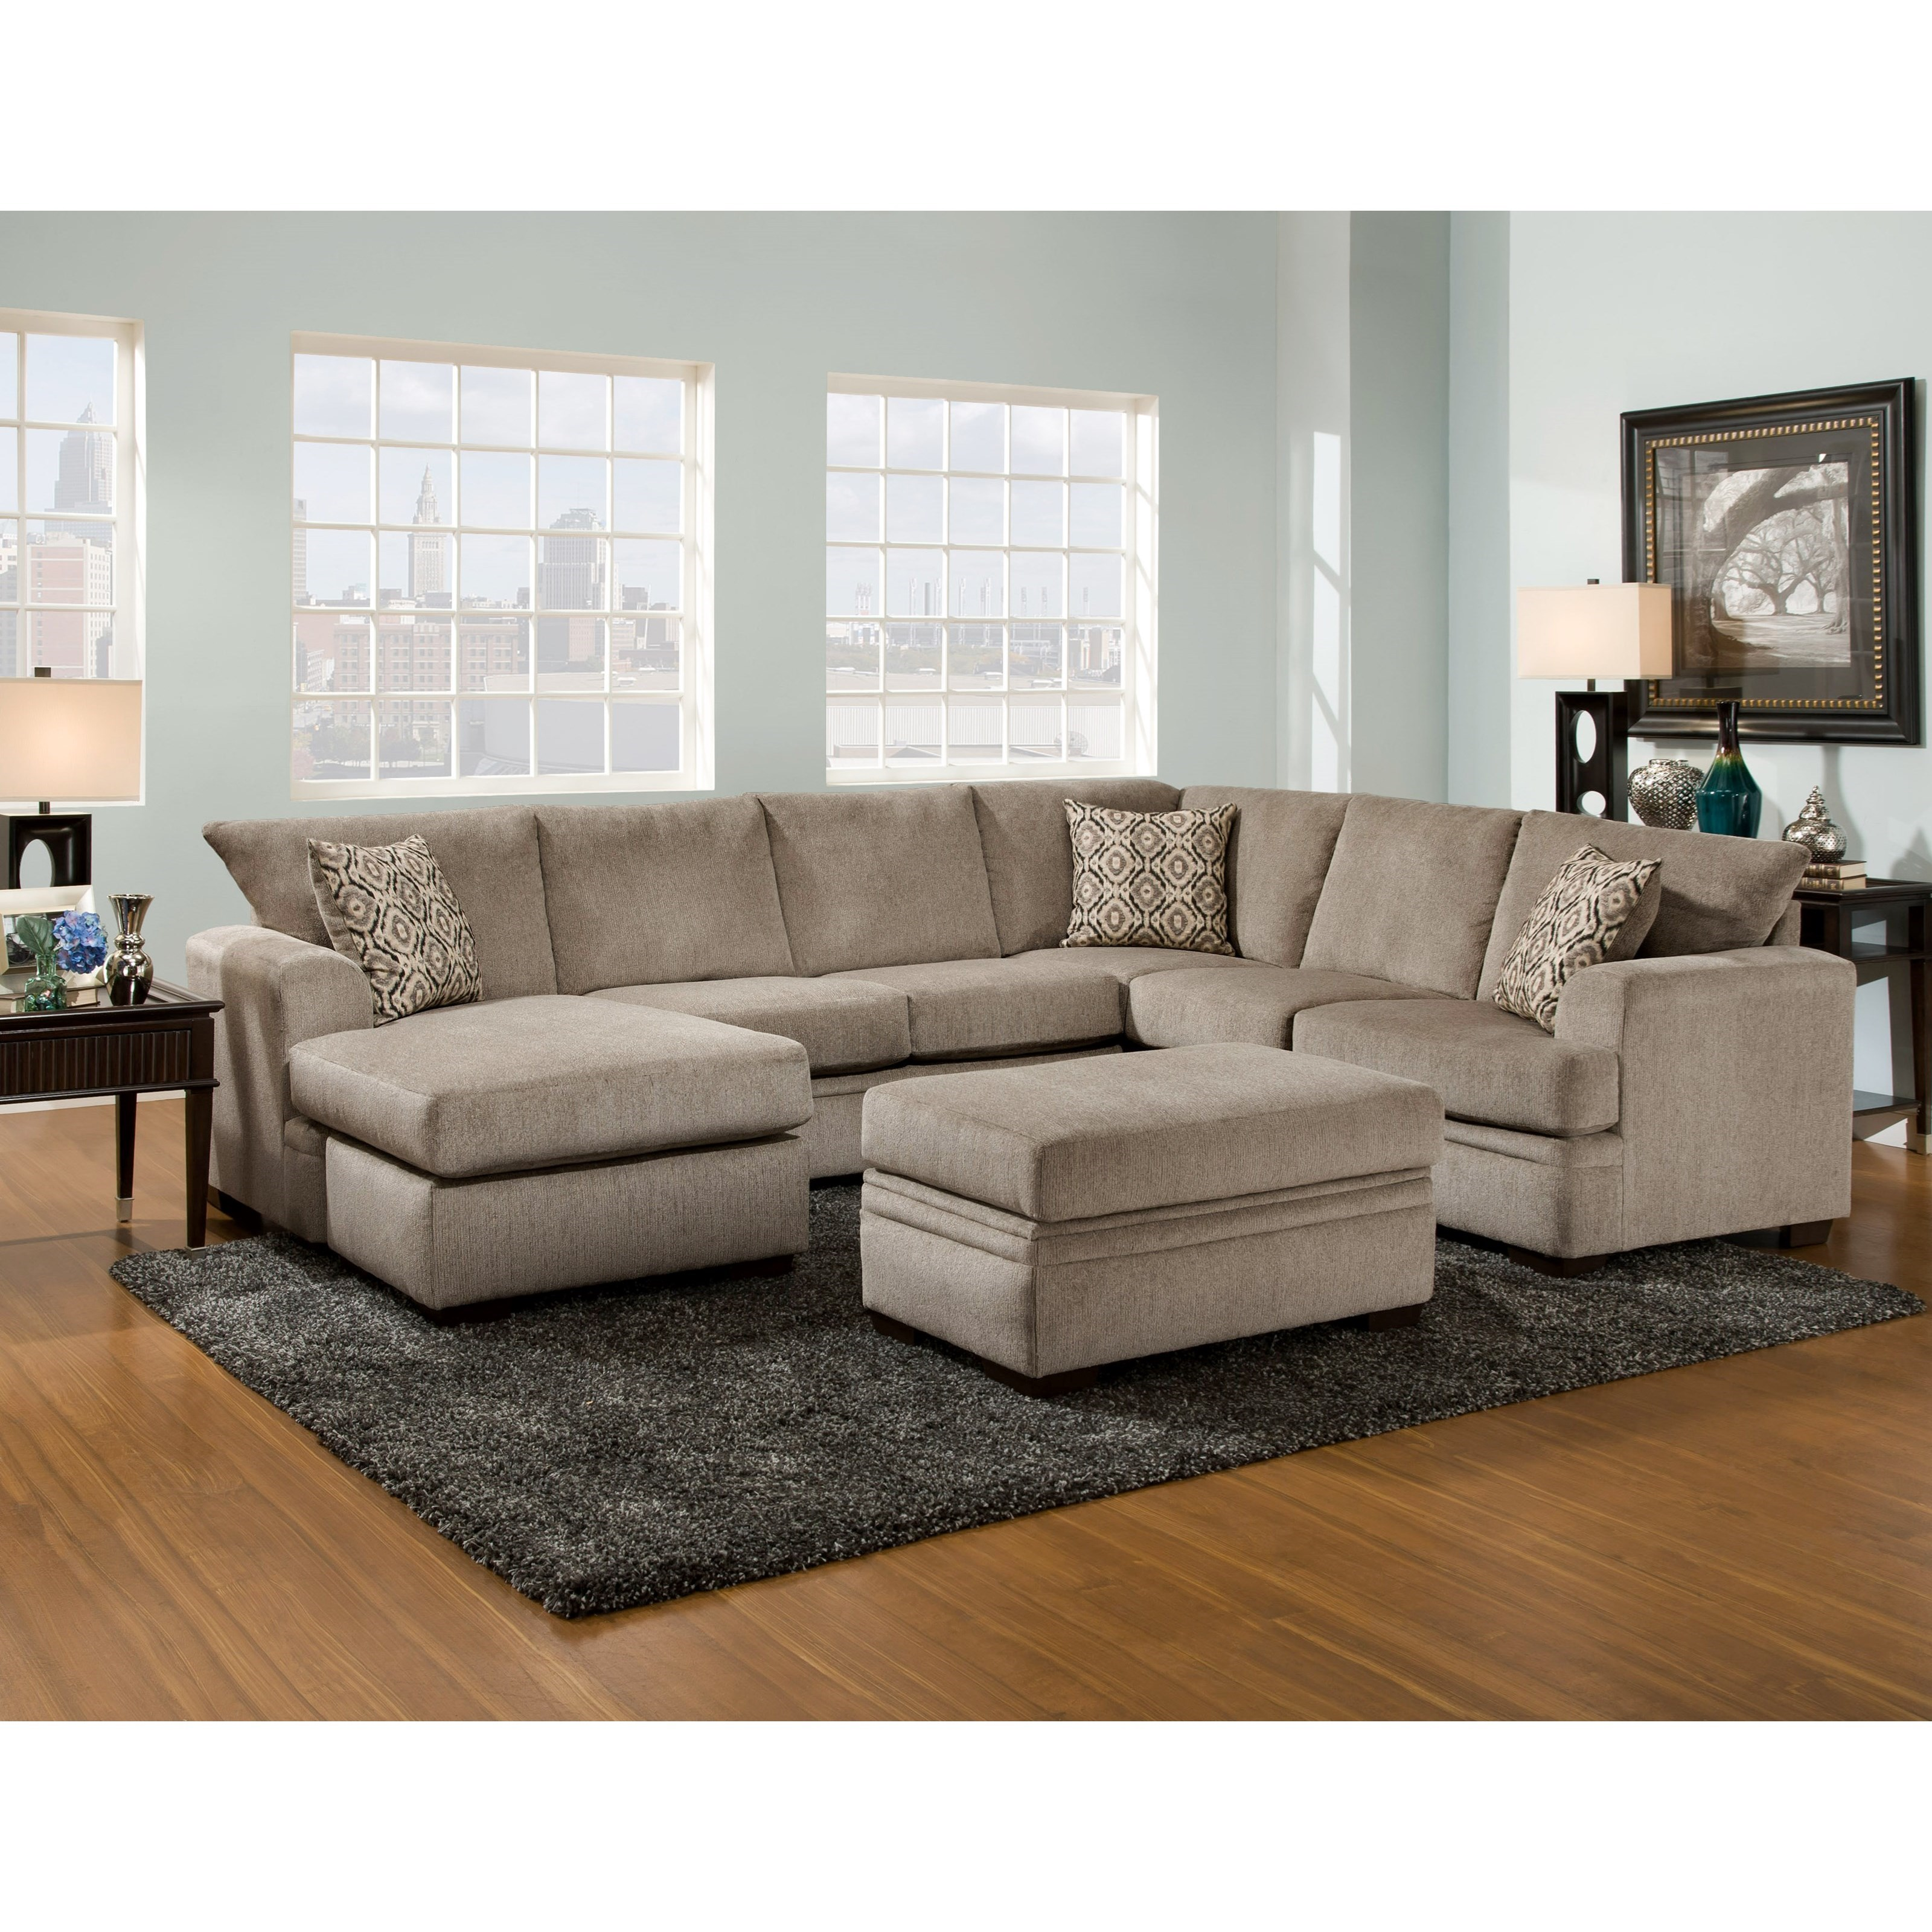 American Furniture 6800 Sectional Sofa With Left Side Chaise Prime Brothers Furniture